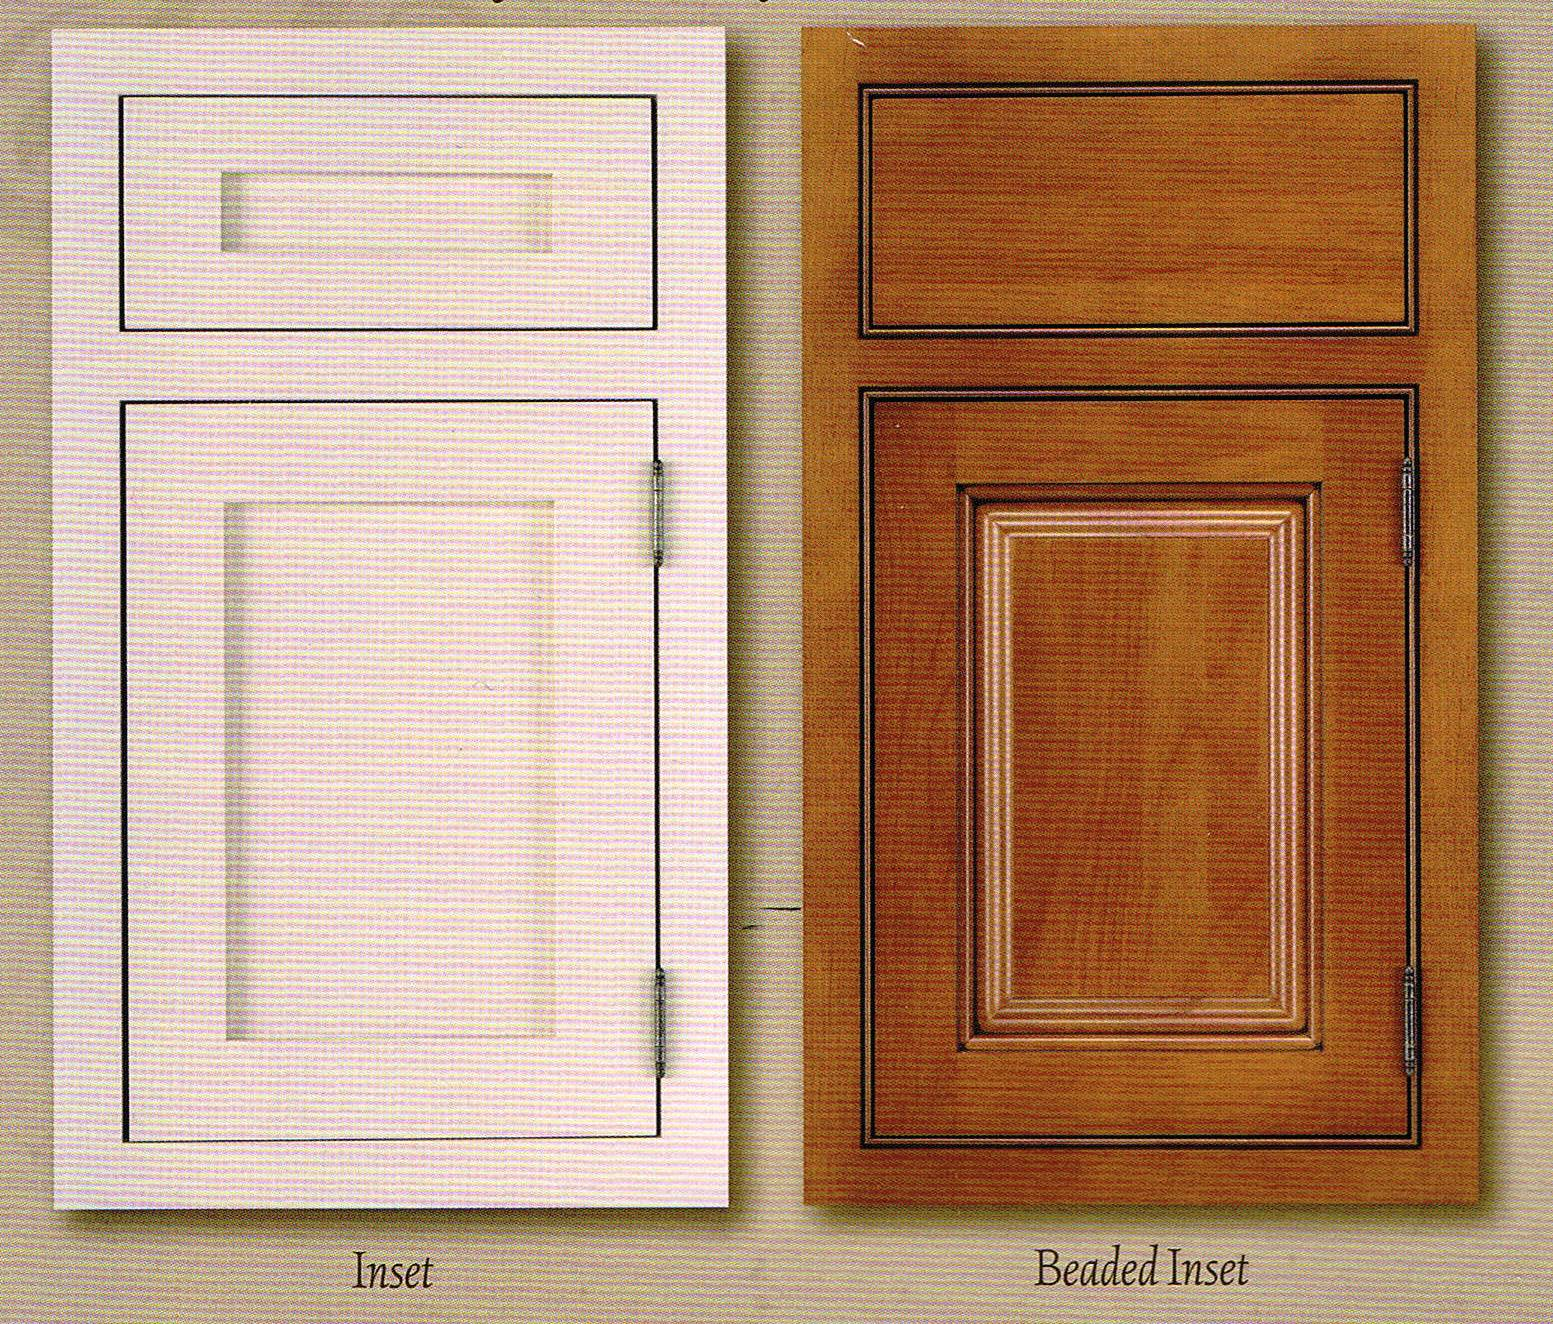 & How to Select Kitchen Cabinets - Cabinetry Overlay Styles